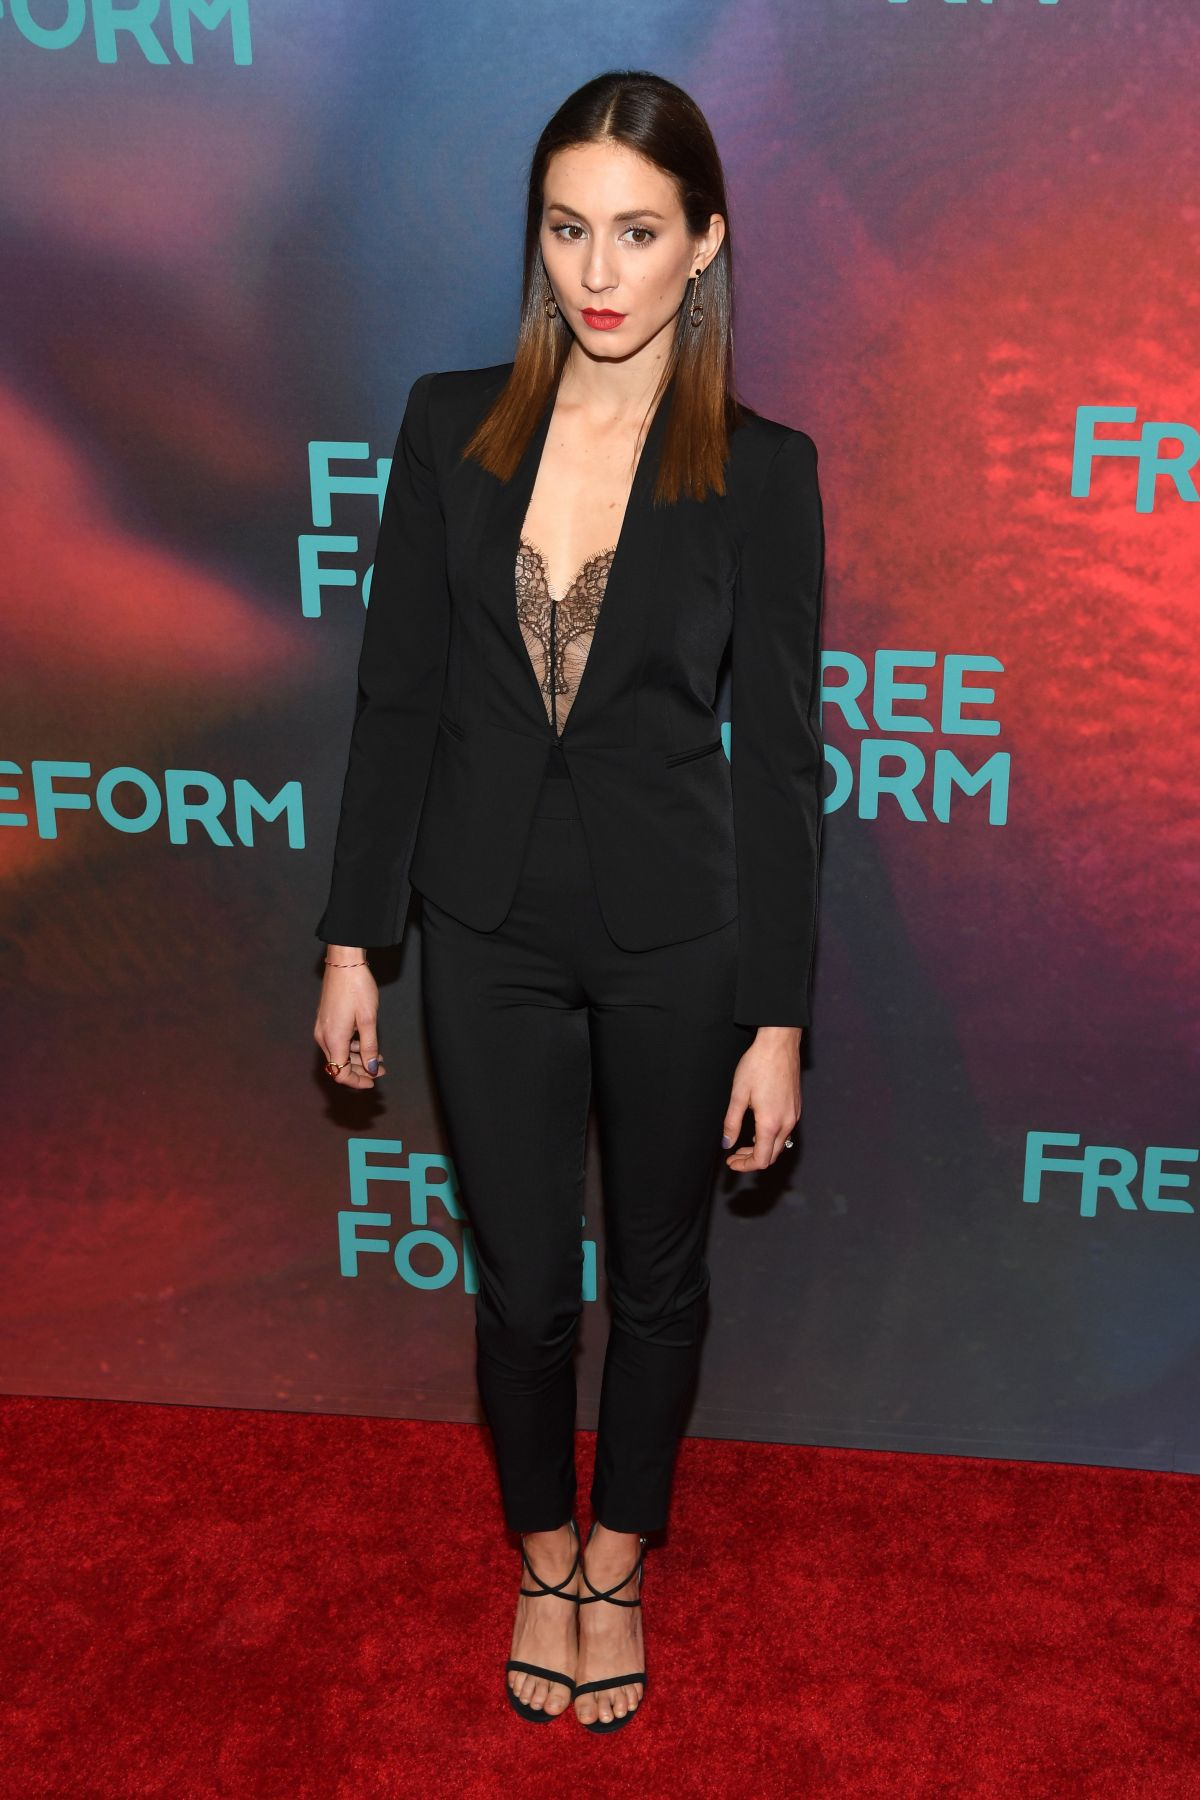 Troian Bellisario At 2017 Freeform Upfront in NYC   troian-bellisario-at-2017-freeform-upfront-in-nyc_8